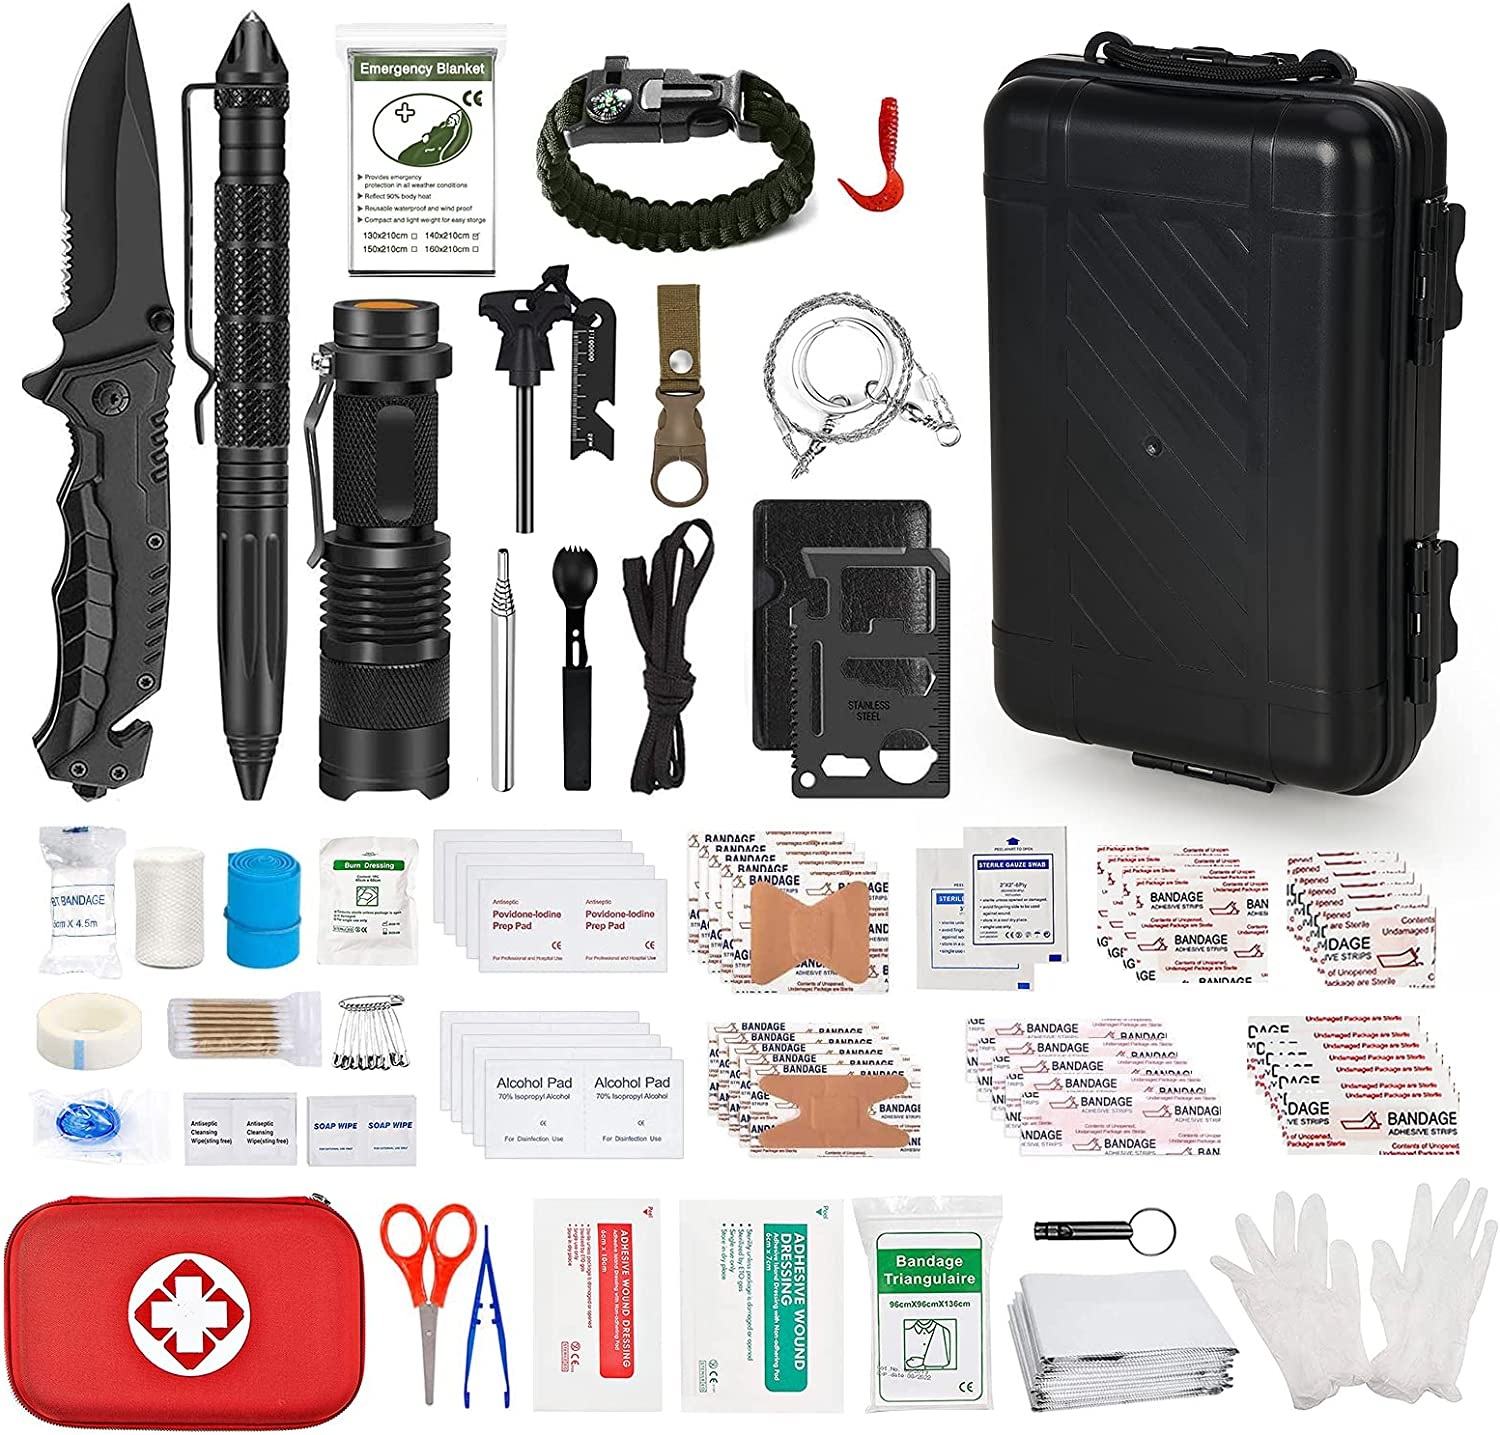 Emergency Survival Kit, 187 Pcs Professional Survival Tools and First Aid Kit, Camping Kit for Outdoor Adventure, Camping, Hiking, Hunting, Natural Disasters, Home, Office and Car